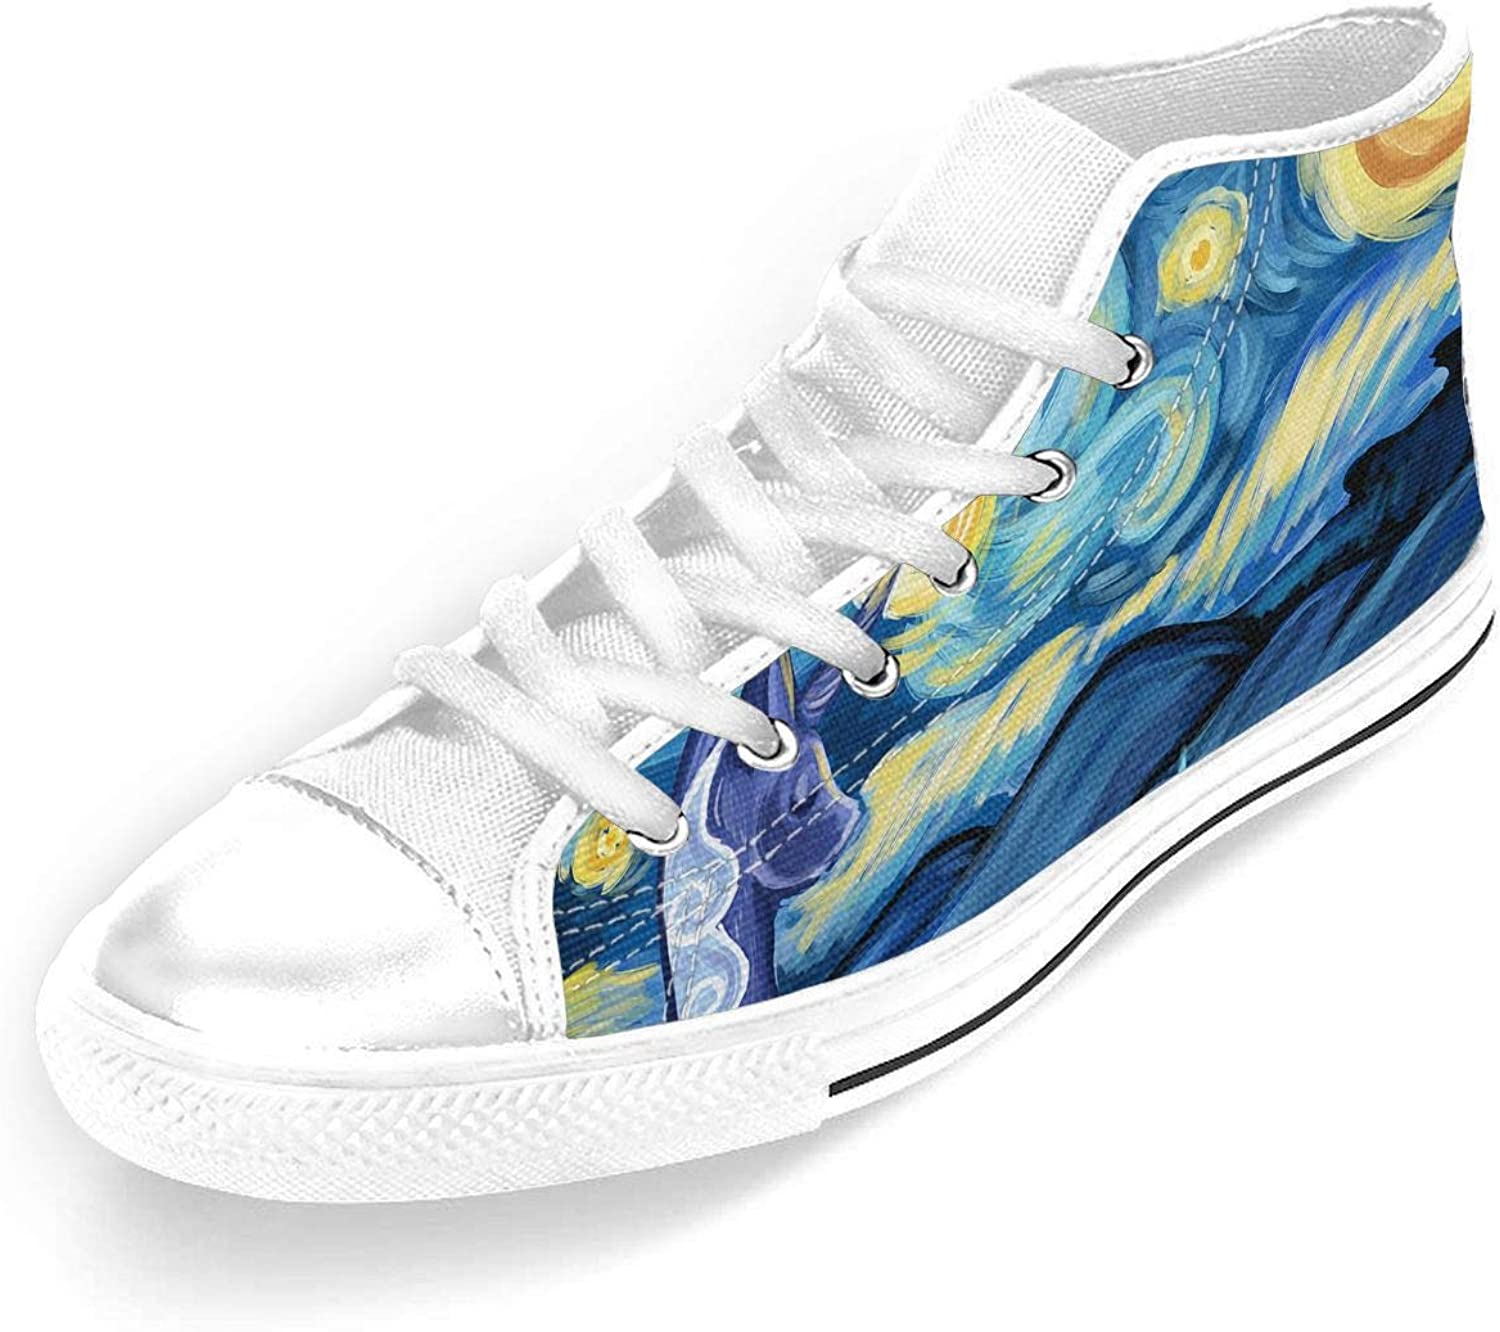 Unicorn With Starry Unisex High-Top Casual Sneakers In Classic Style And color And Durable Canvas Uppers